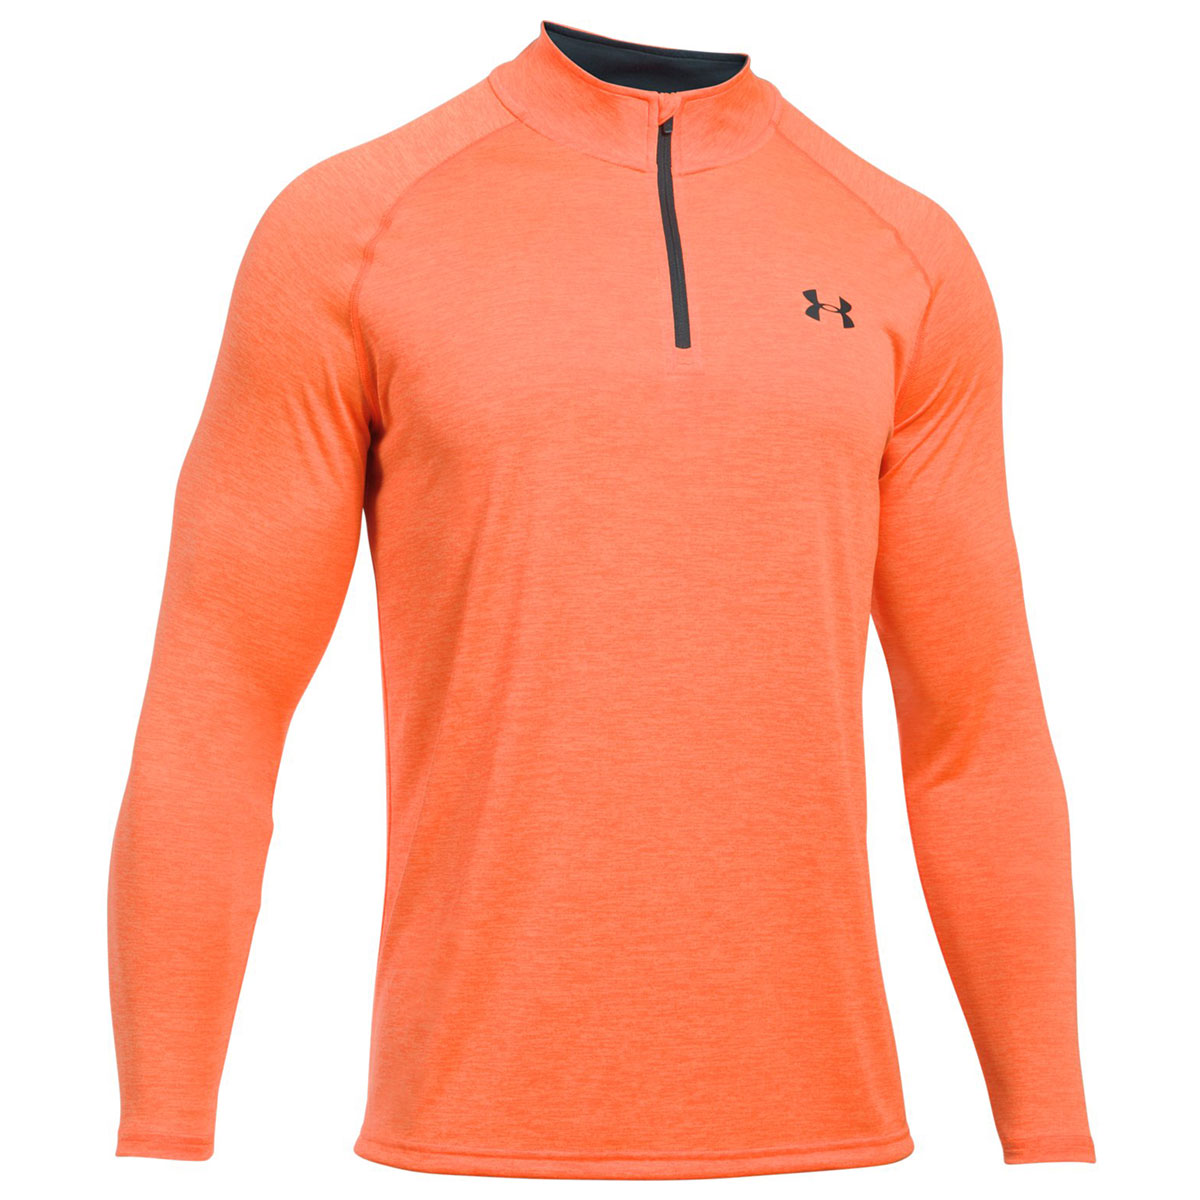 Under-Armour-Mens-UA-Tech-1-4-Zip-Long-Sleeve-Top-Workout-Layer-27-OFF-RRP thumbnail 56